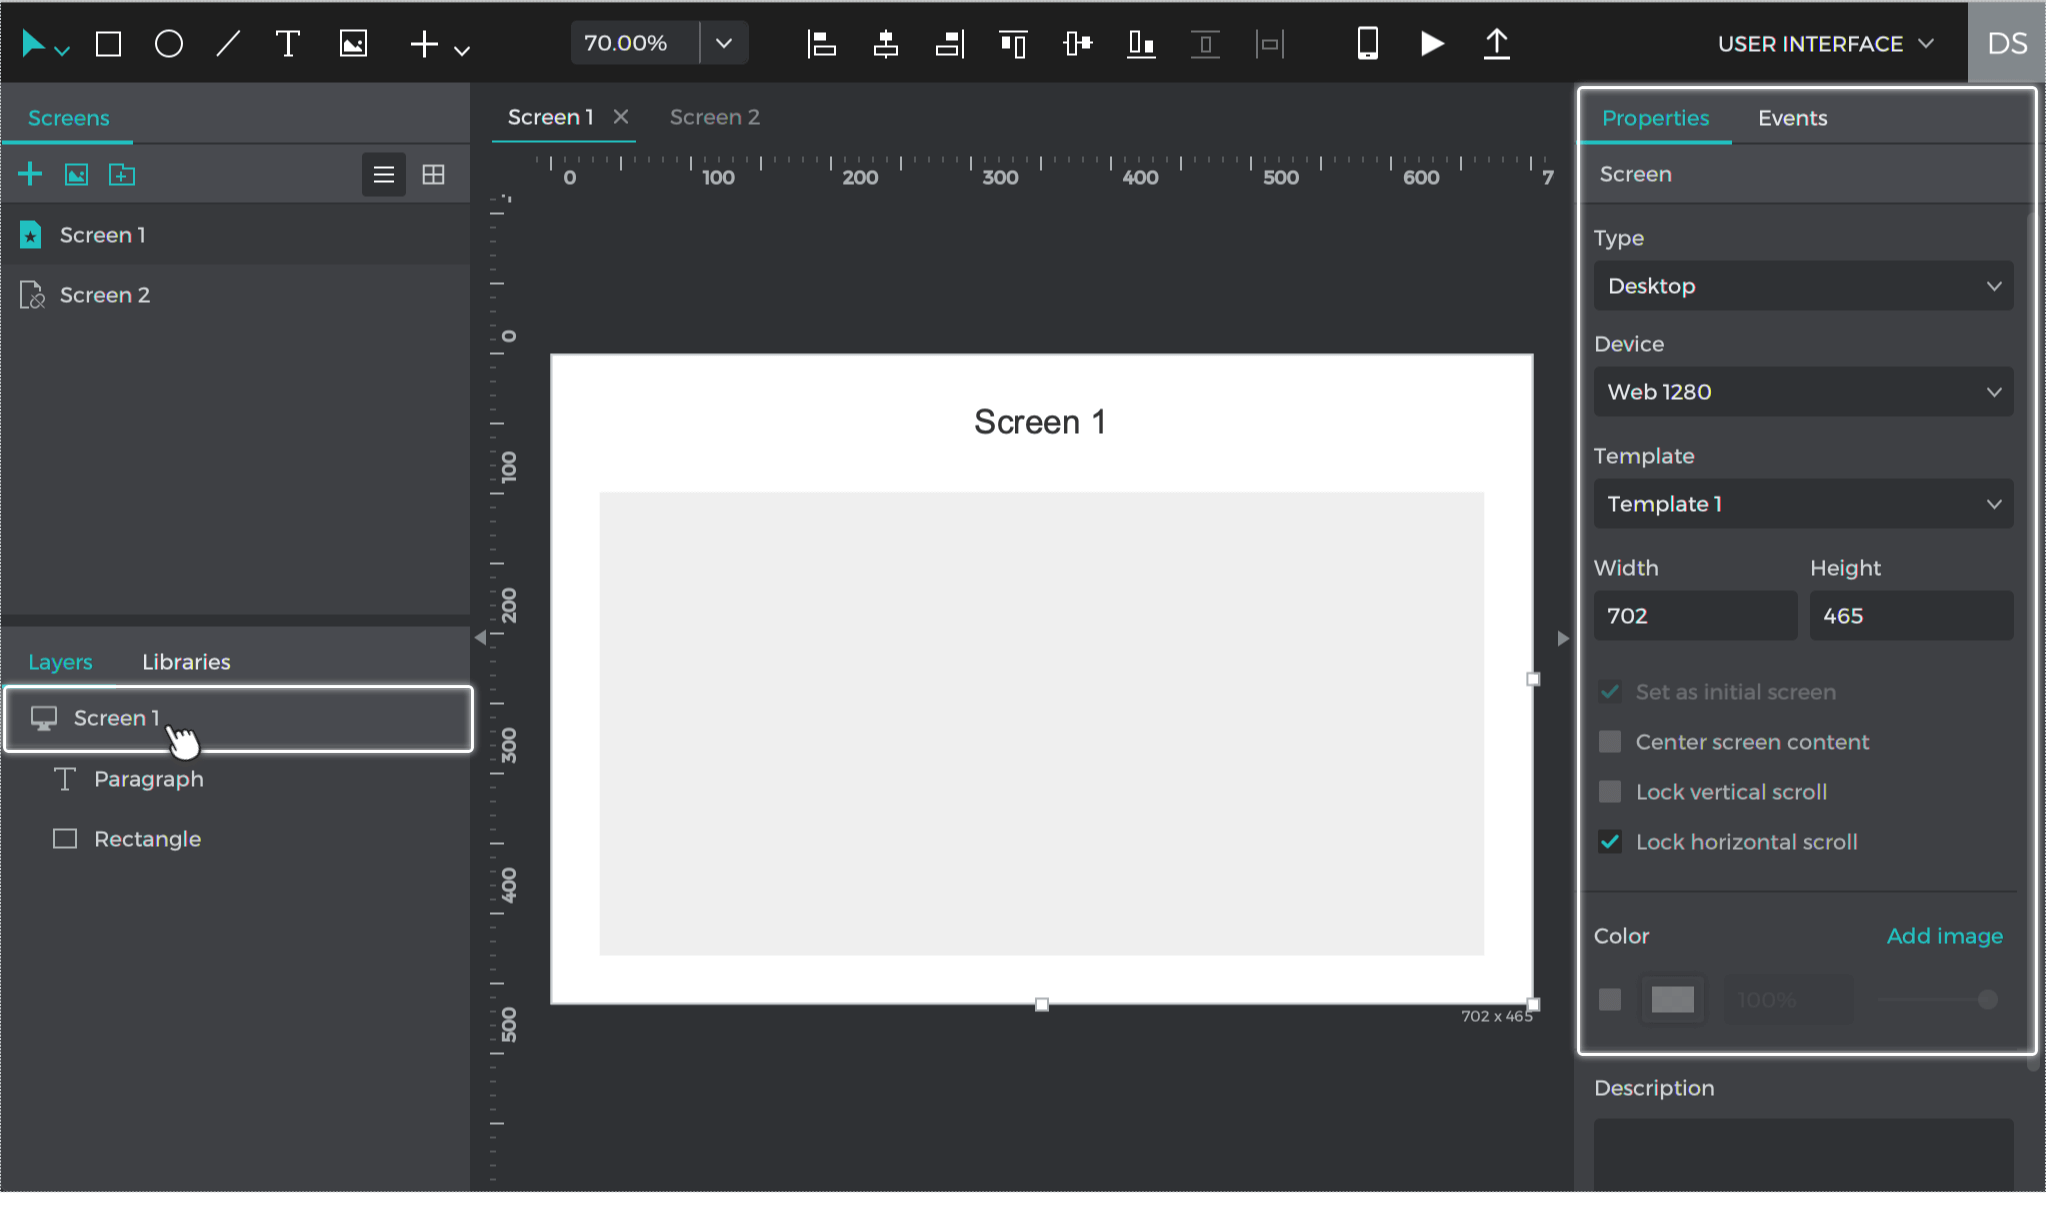 Select the screen in the Layers palette or double click on the Canvas to see options to edit the screen details